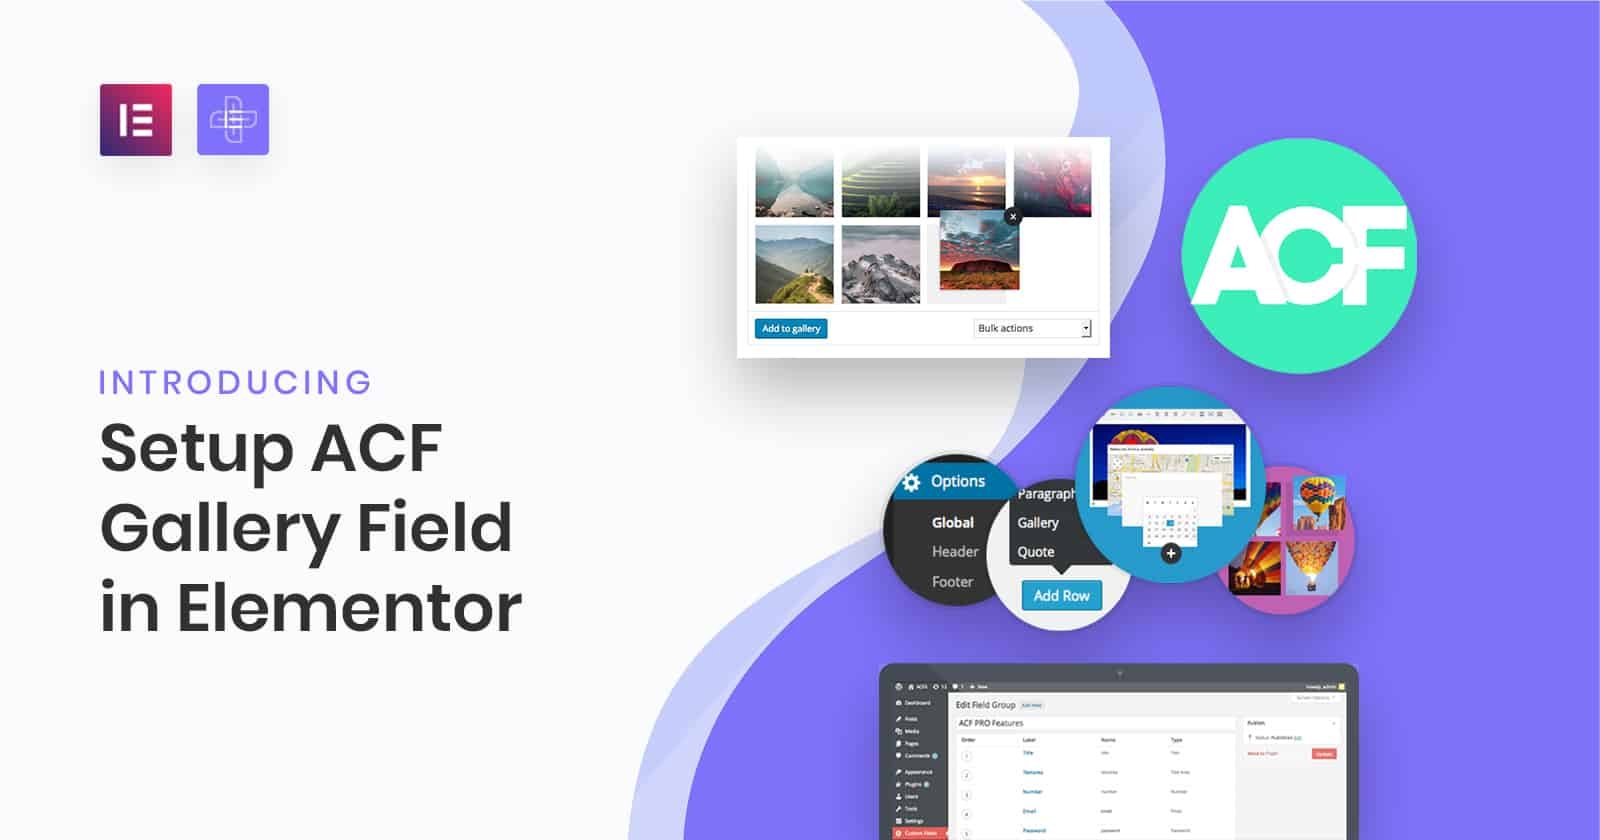 Setup ACF Gallery Field in elementor The Plus Addons for Elementor